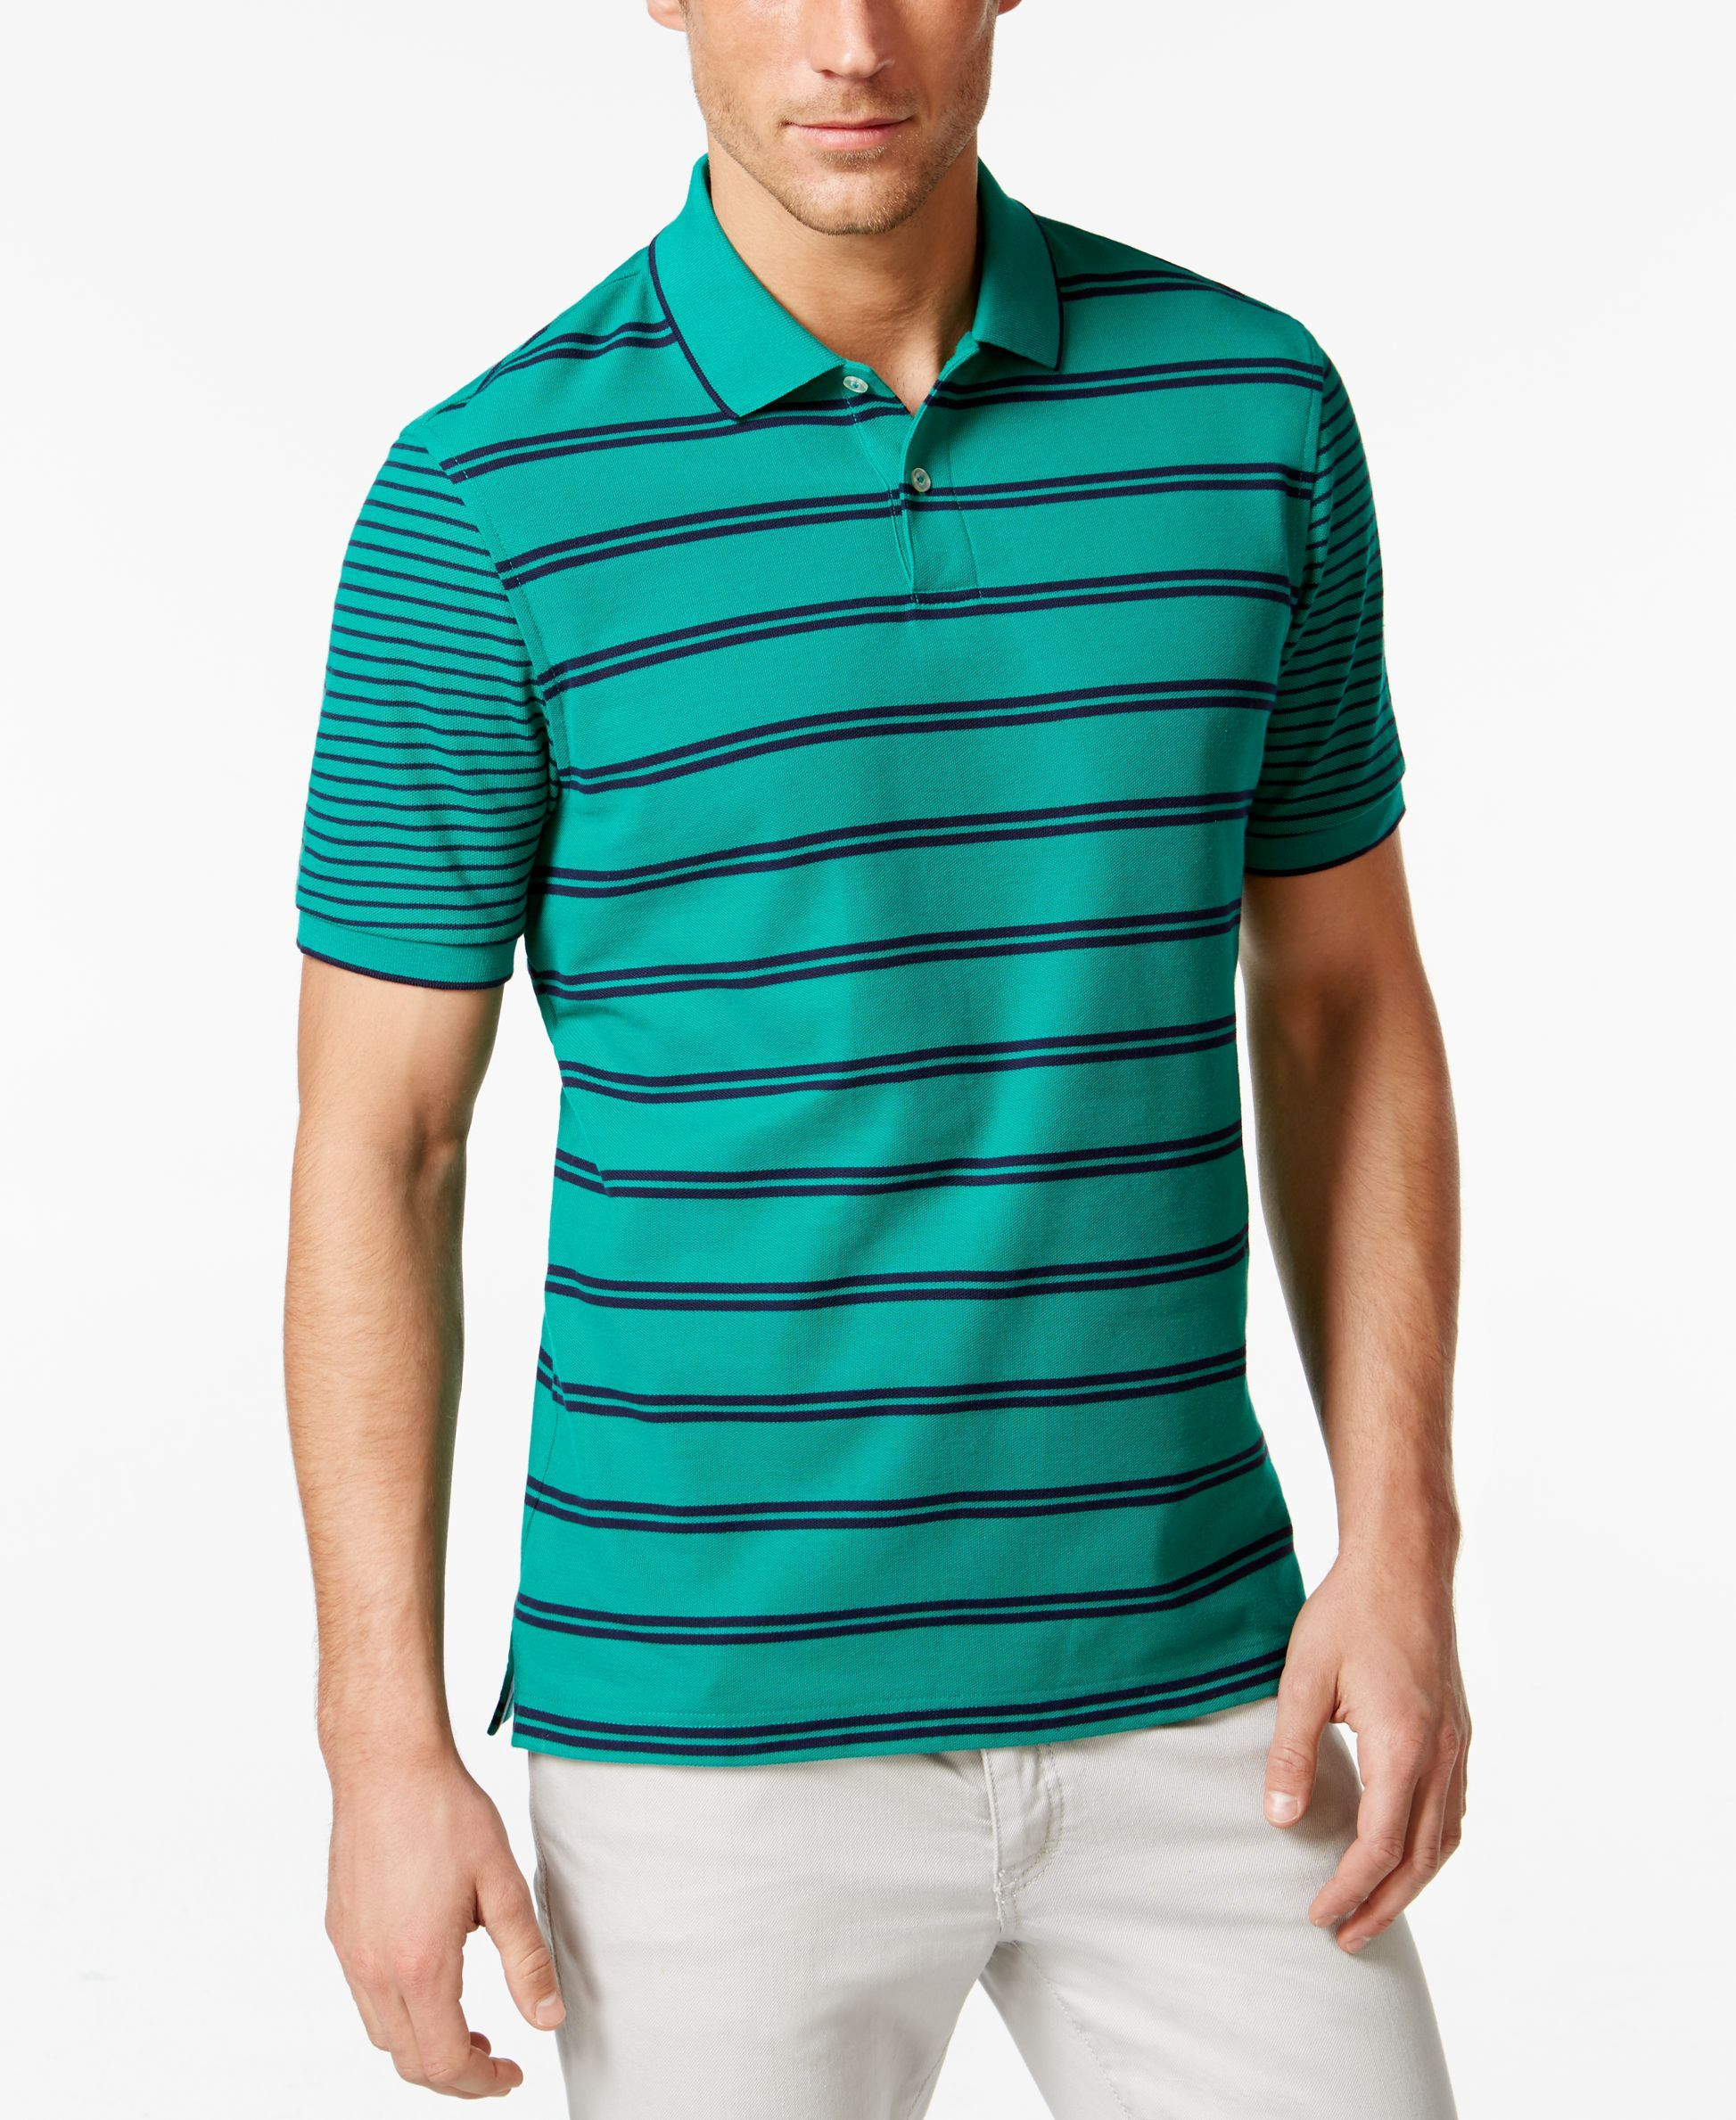 Club Room Short-Sleeve Bartlett Stripe Polo, Only at Macy's